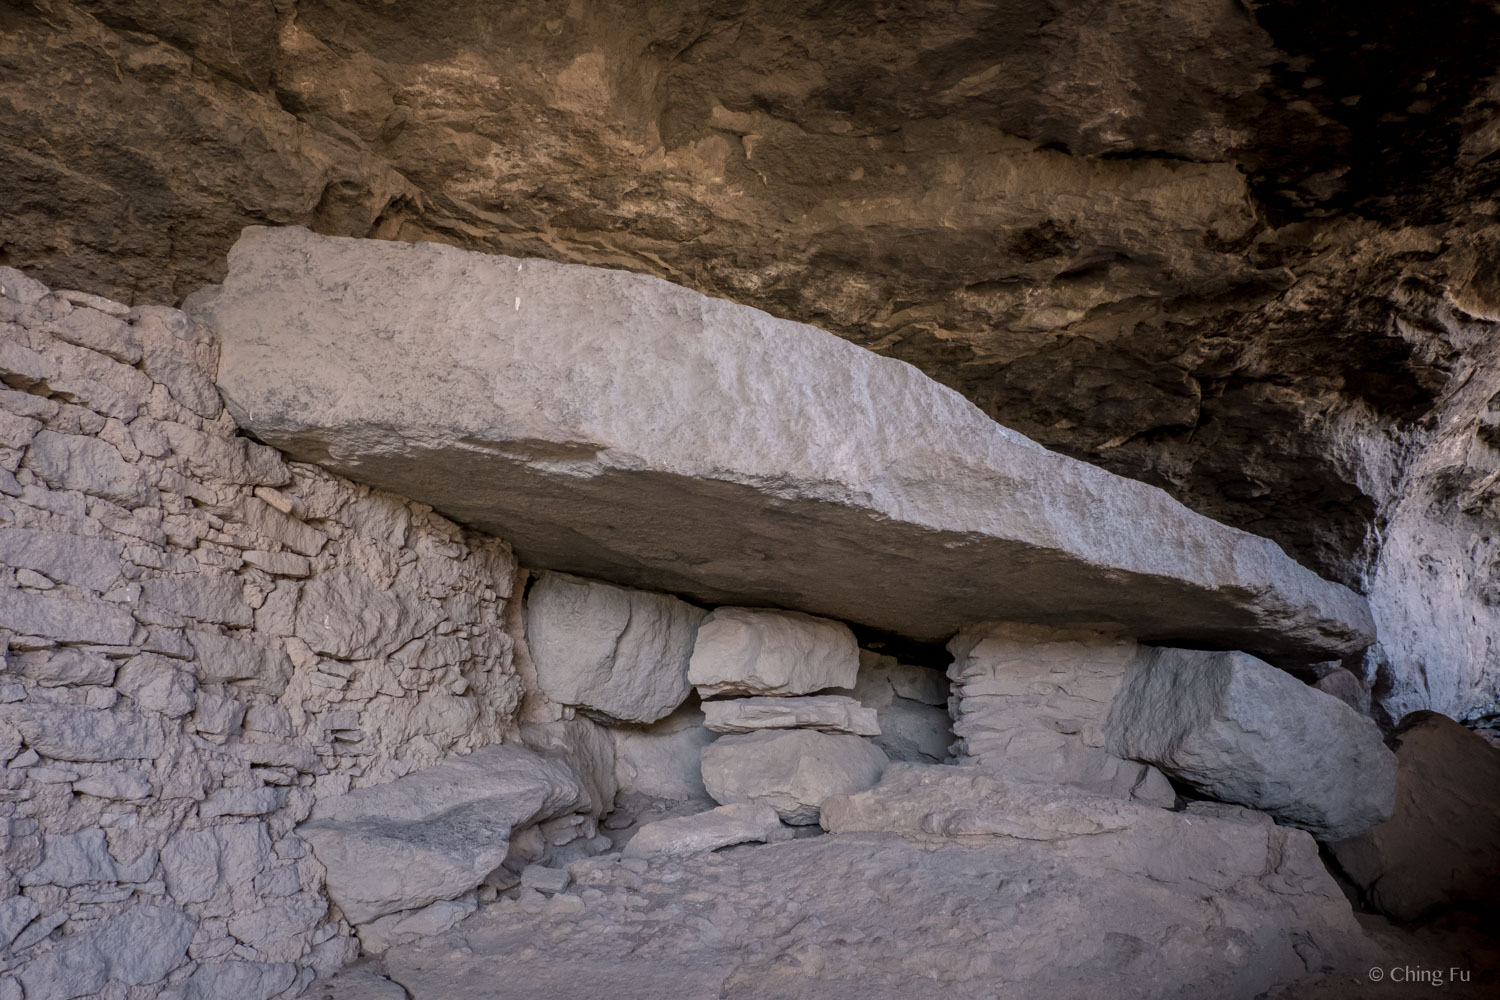 This large rock most likely fell down while the Mogollon people were living in the cave. It landed on a smaller rock that was used to grind food.